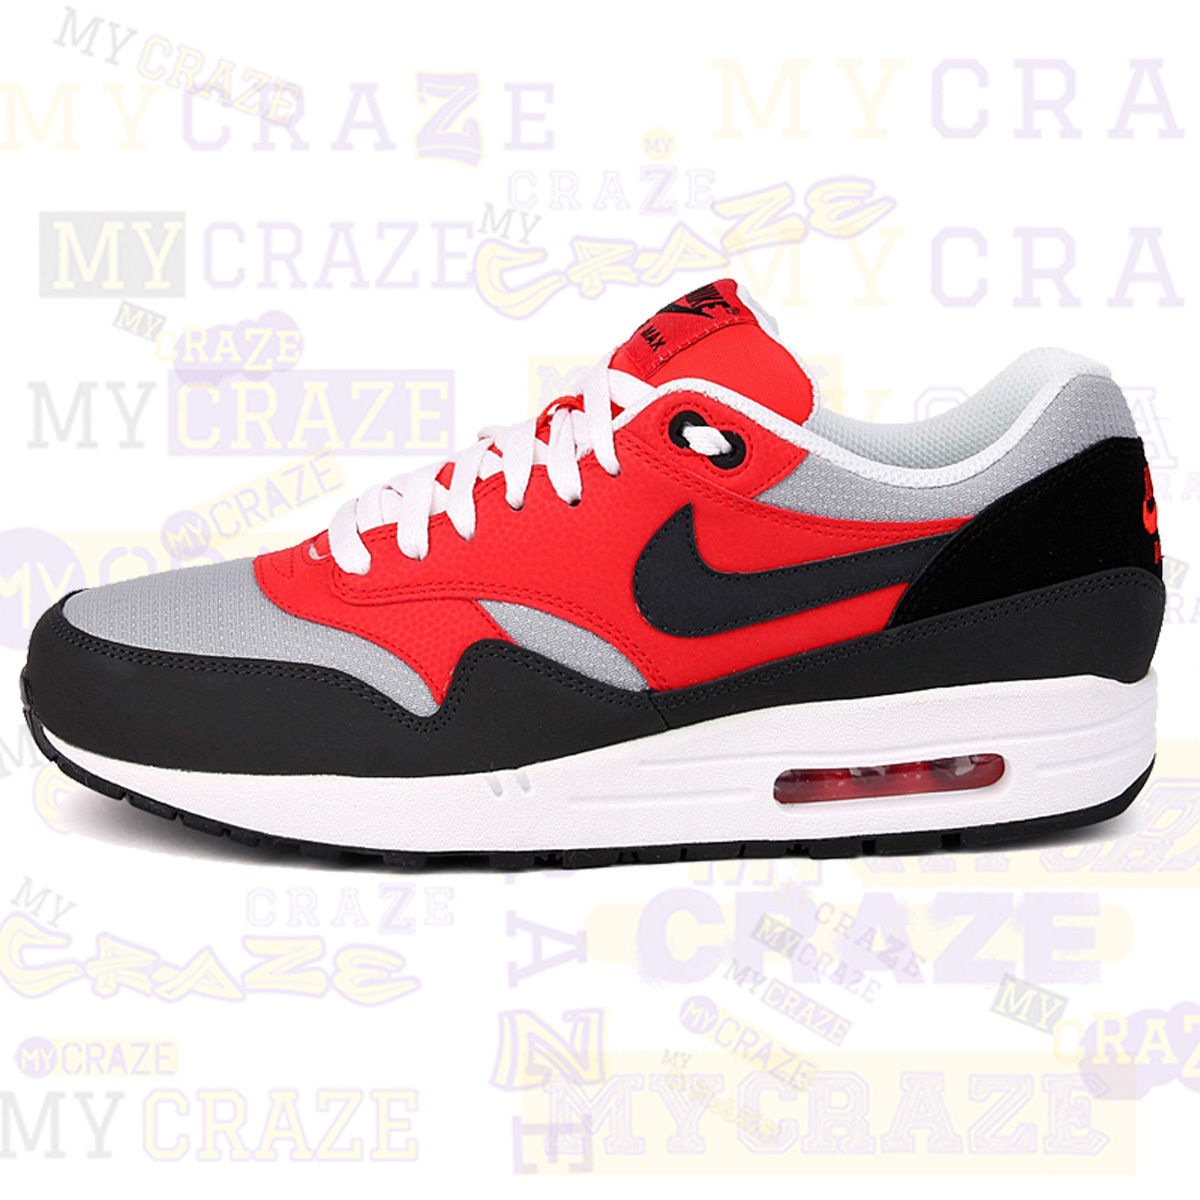 finest selection 0ef92 0d121 Nike Air Max 1 Essential Red Black Mens Sneakers Shoes - MyC